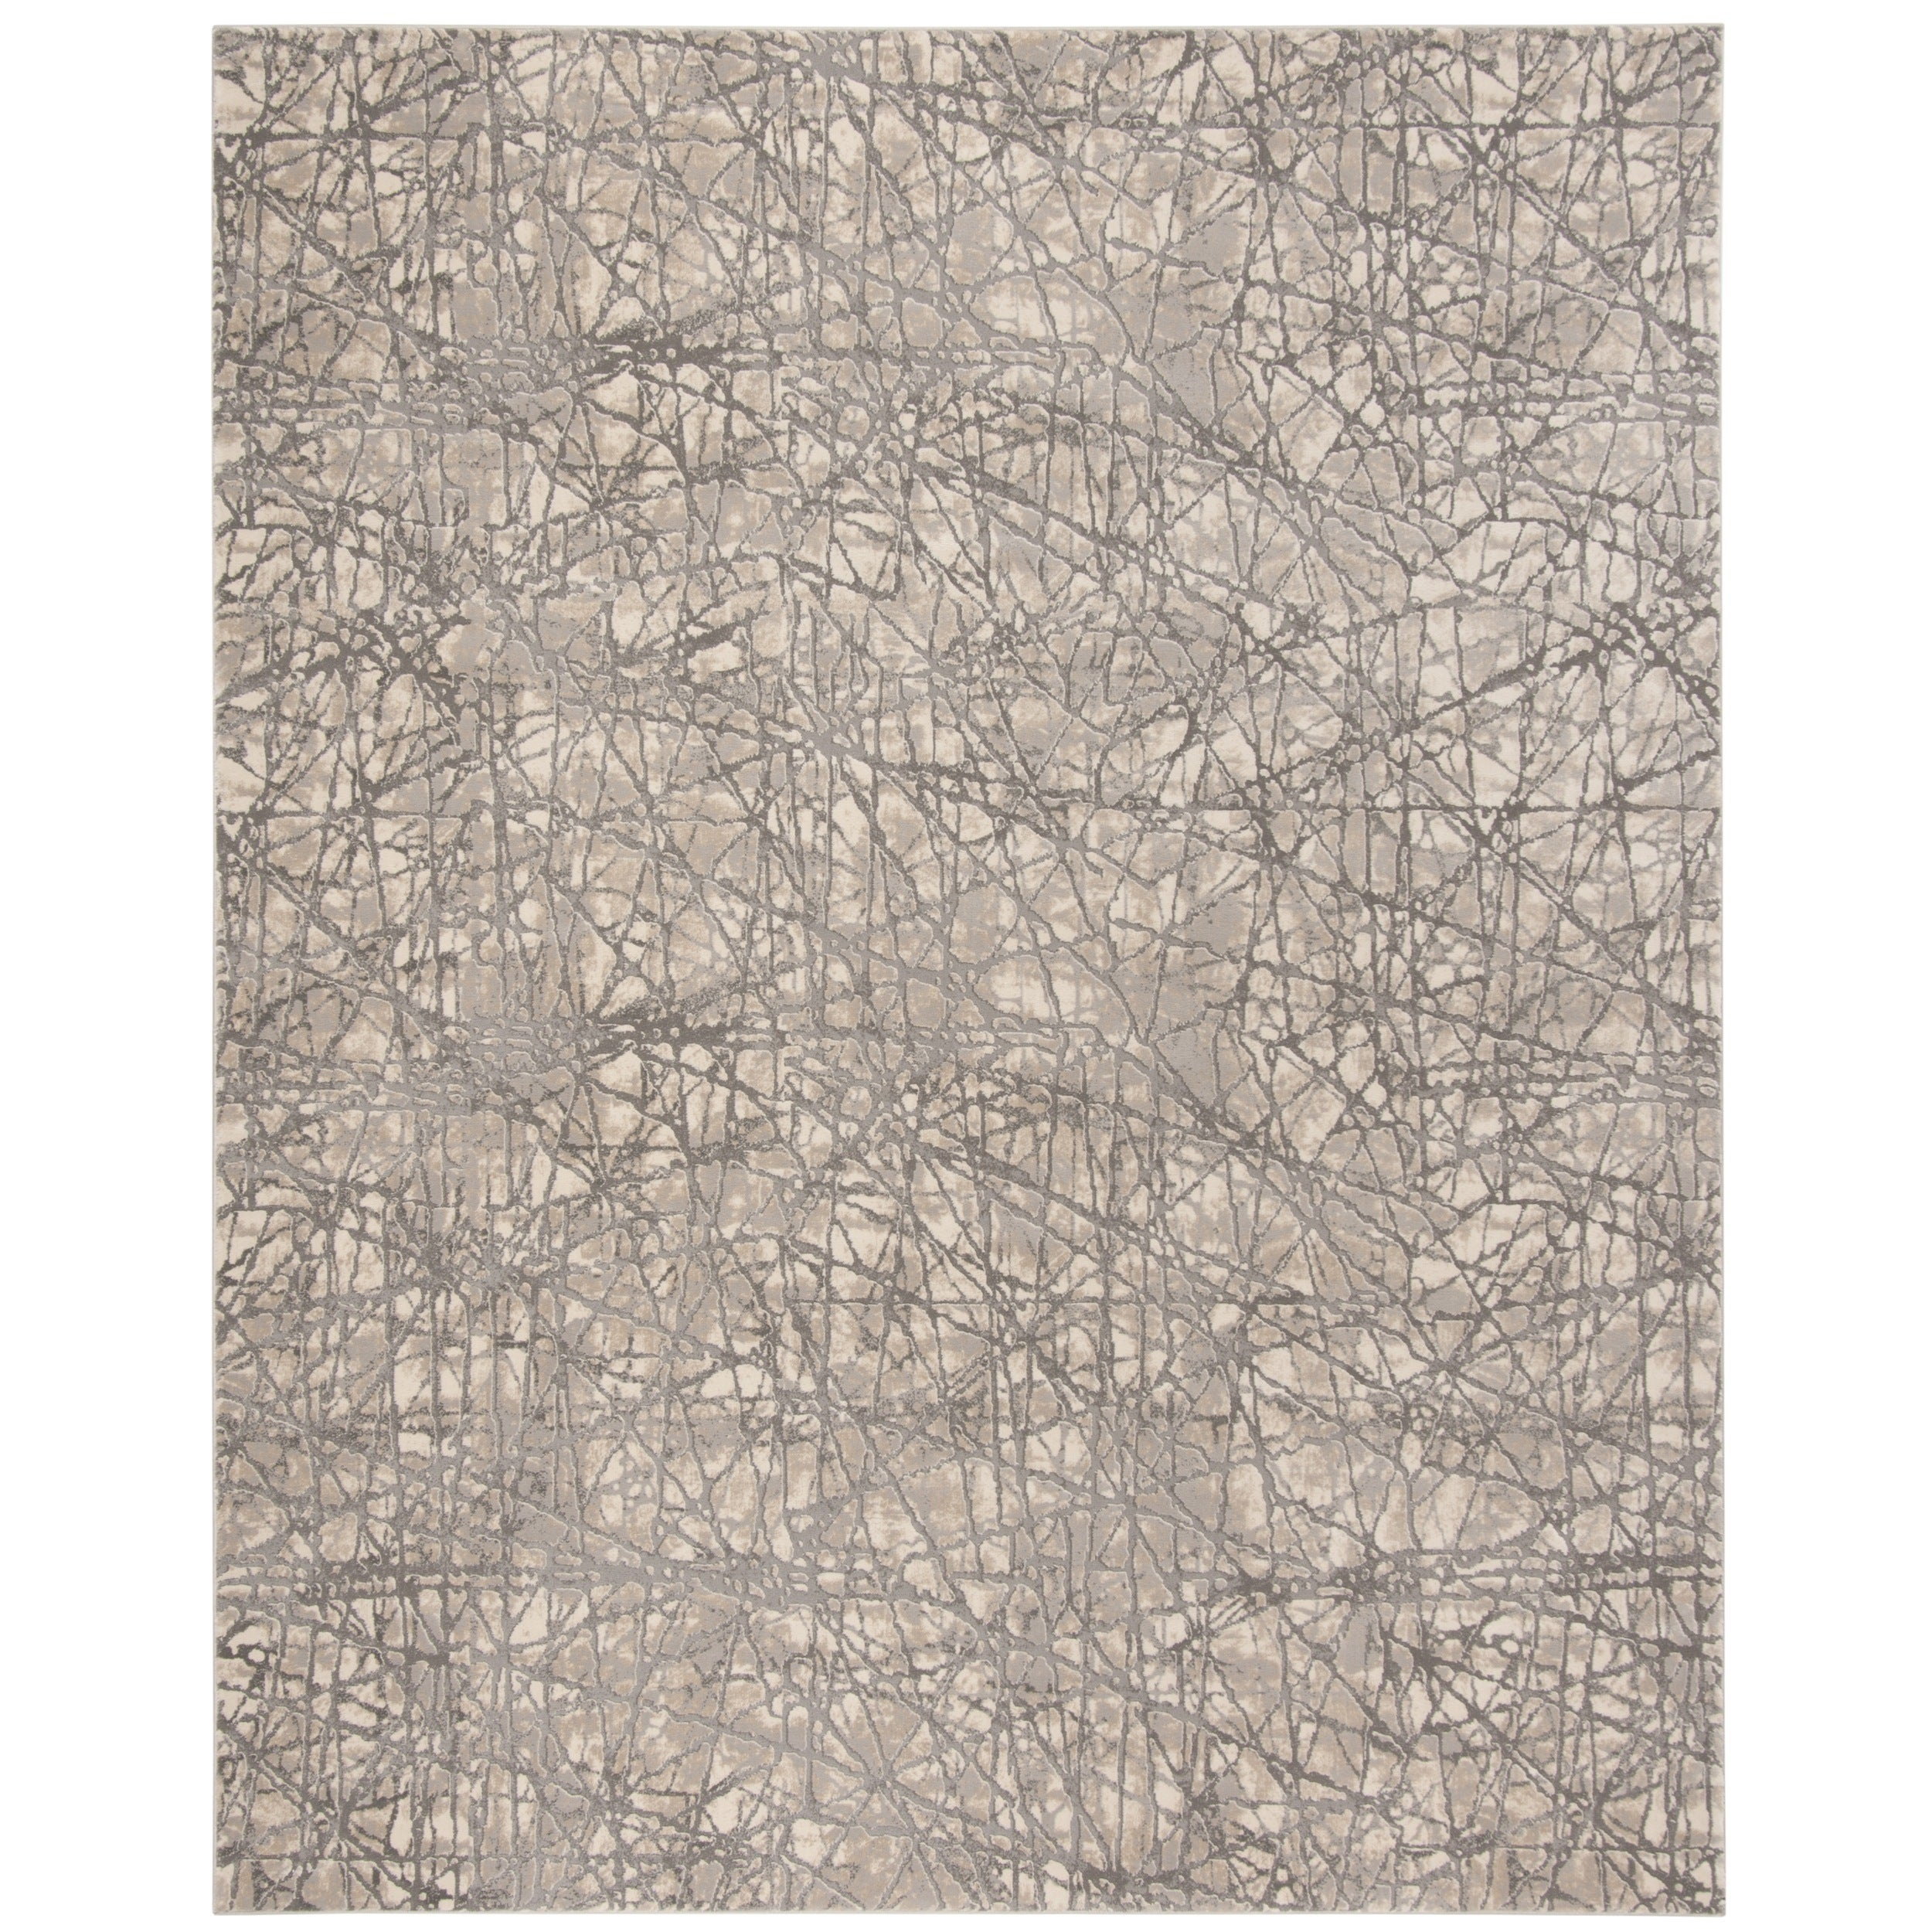 decorators rug and collection the grey depot taurus b rugs beige gray home cream n flooring area x ft